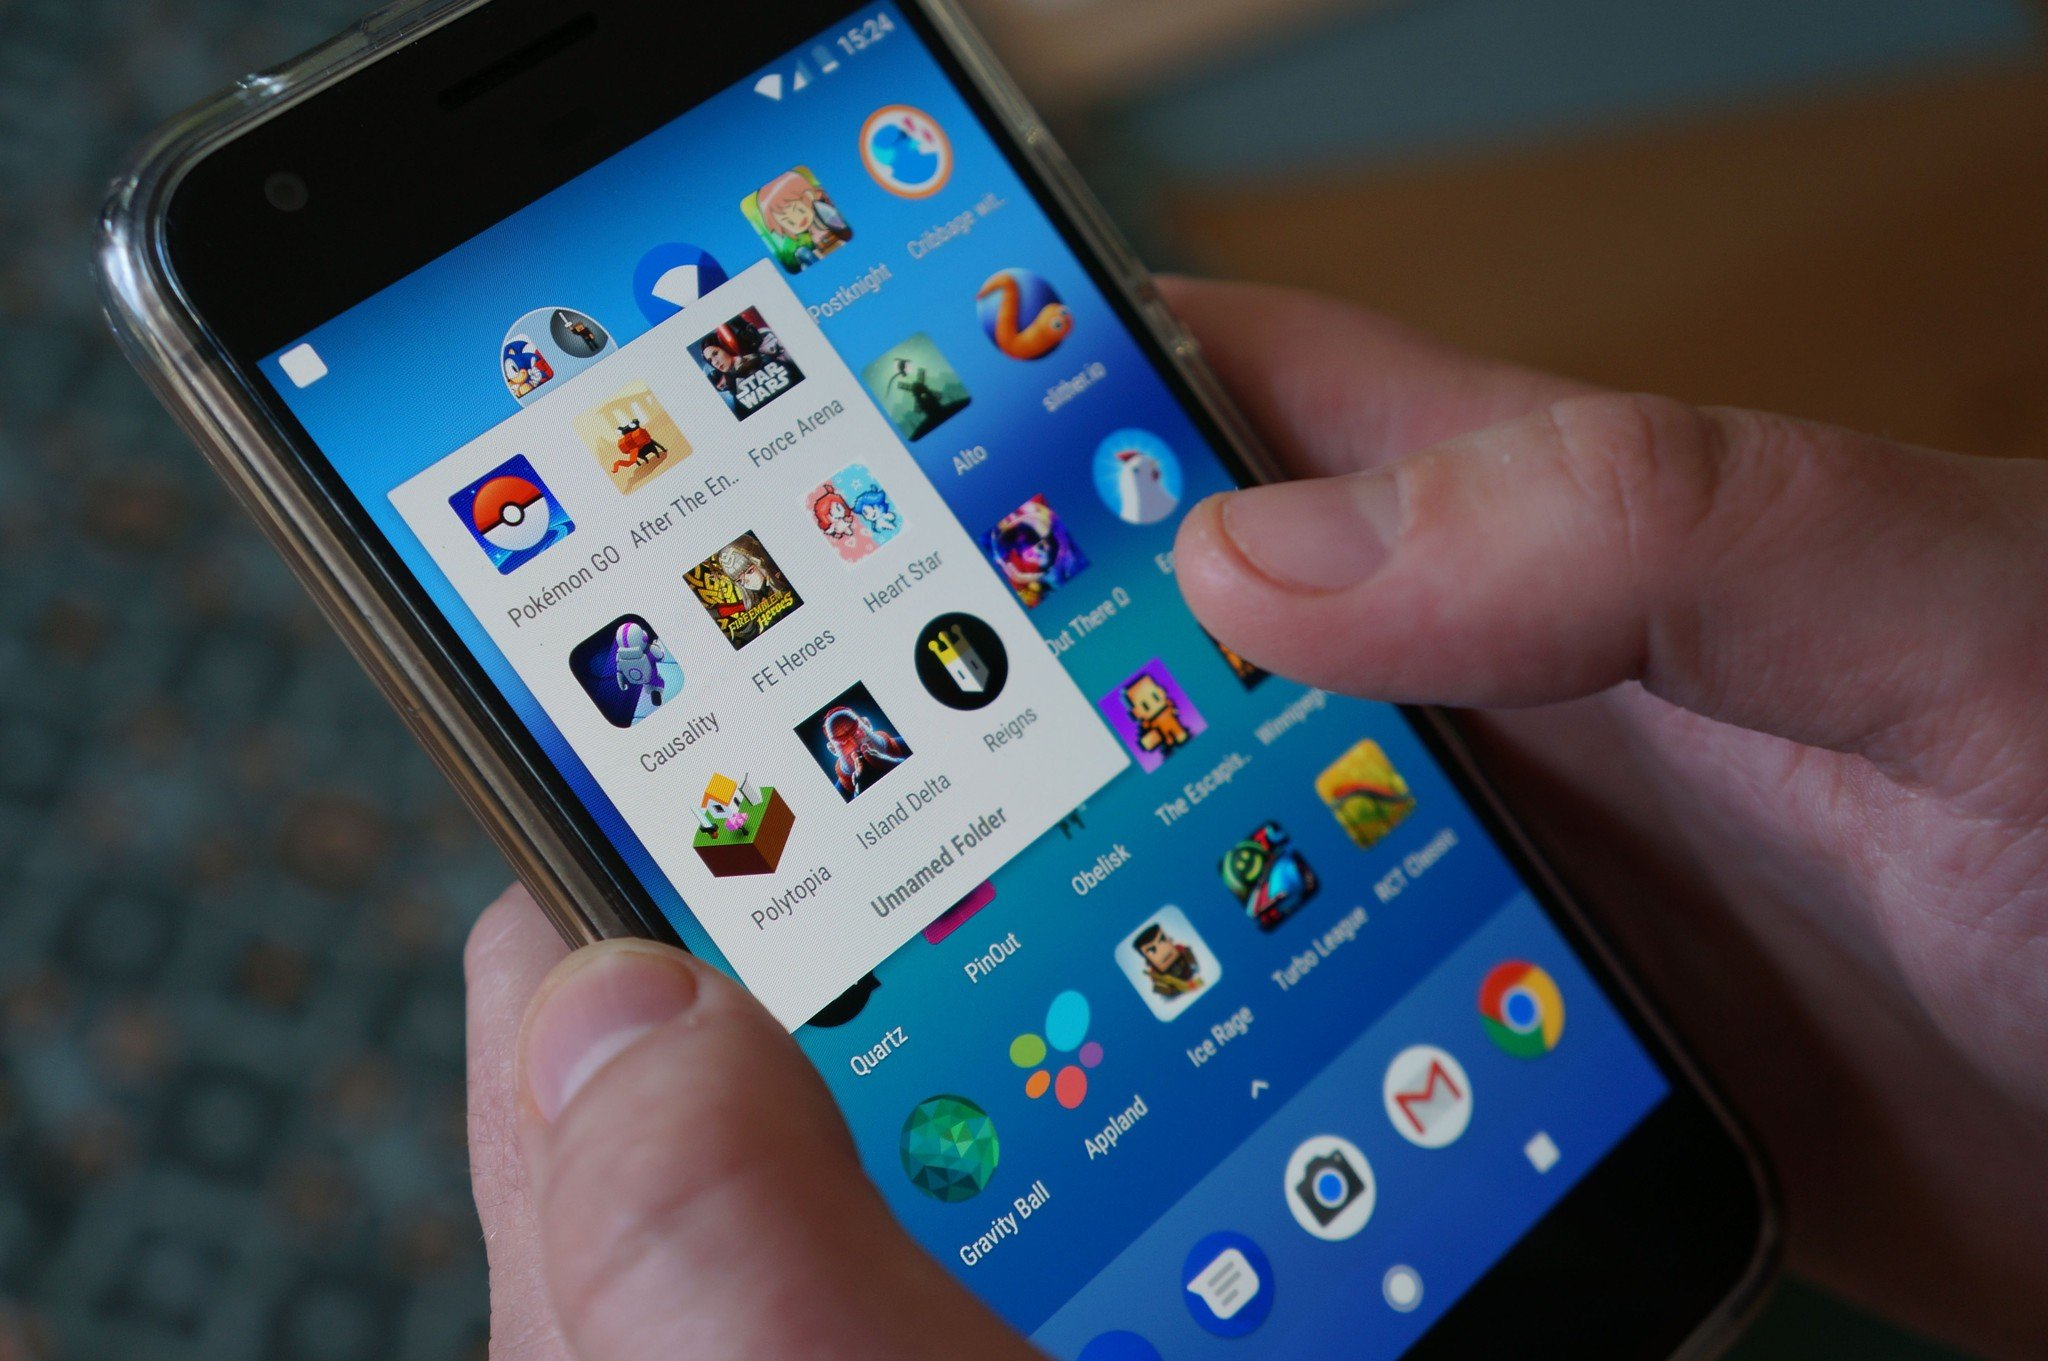 Download w7 iso file barcelona